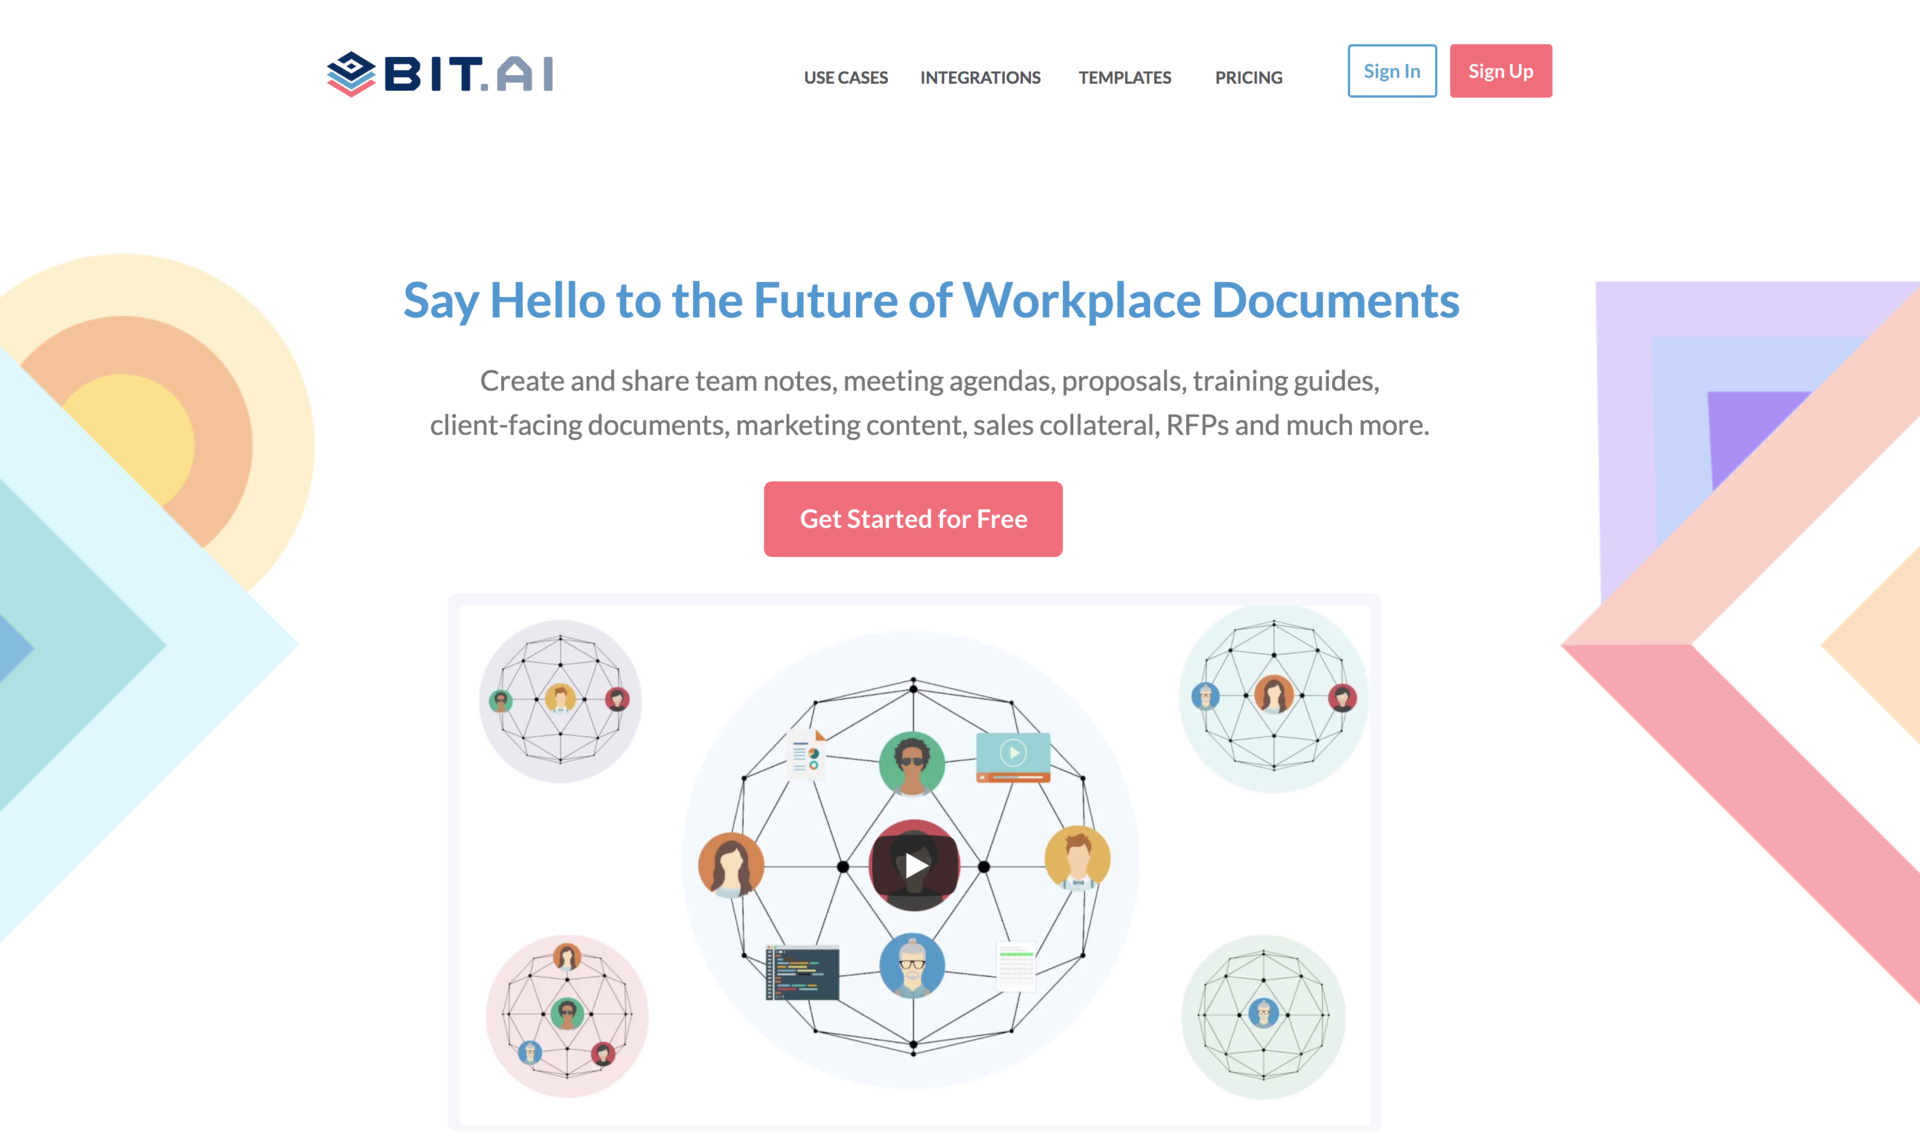 Bit.ai: SaaS tool for remote working